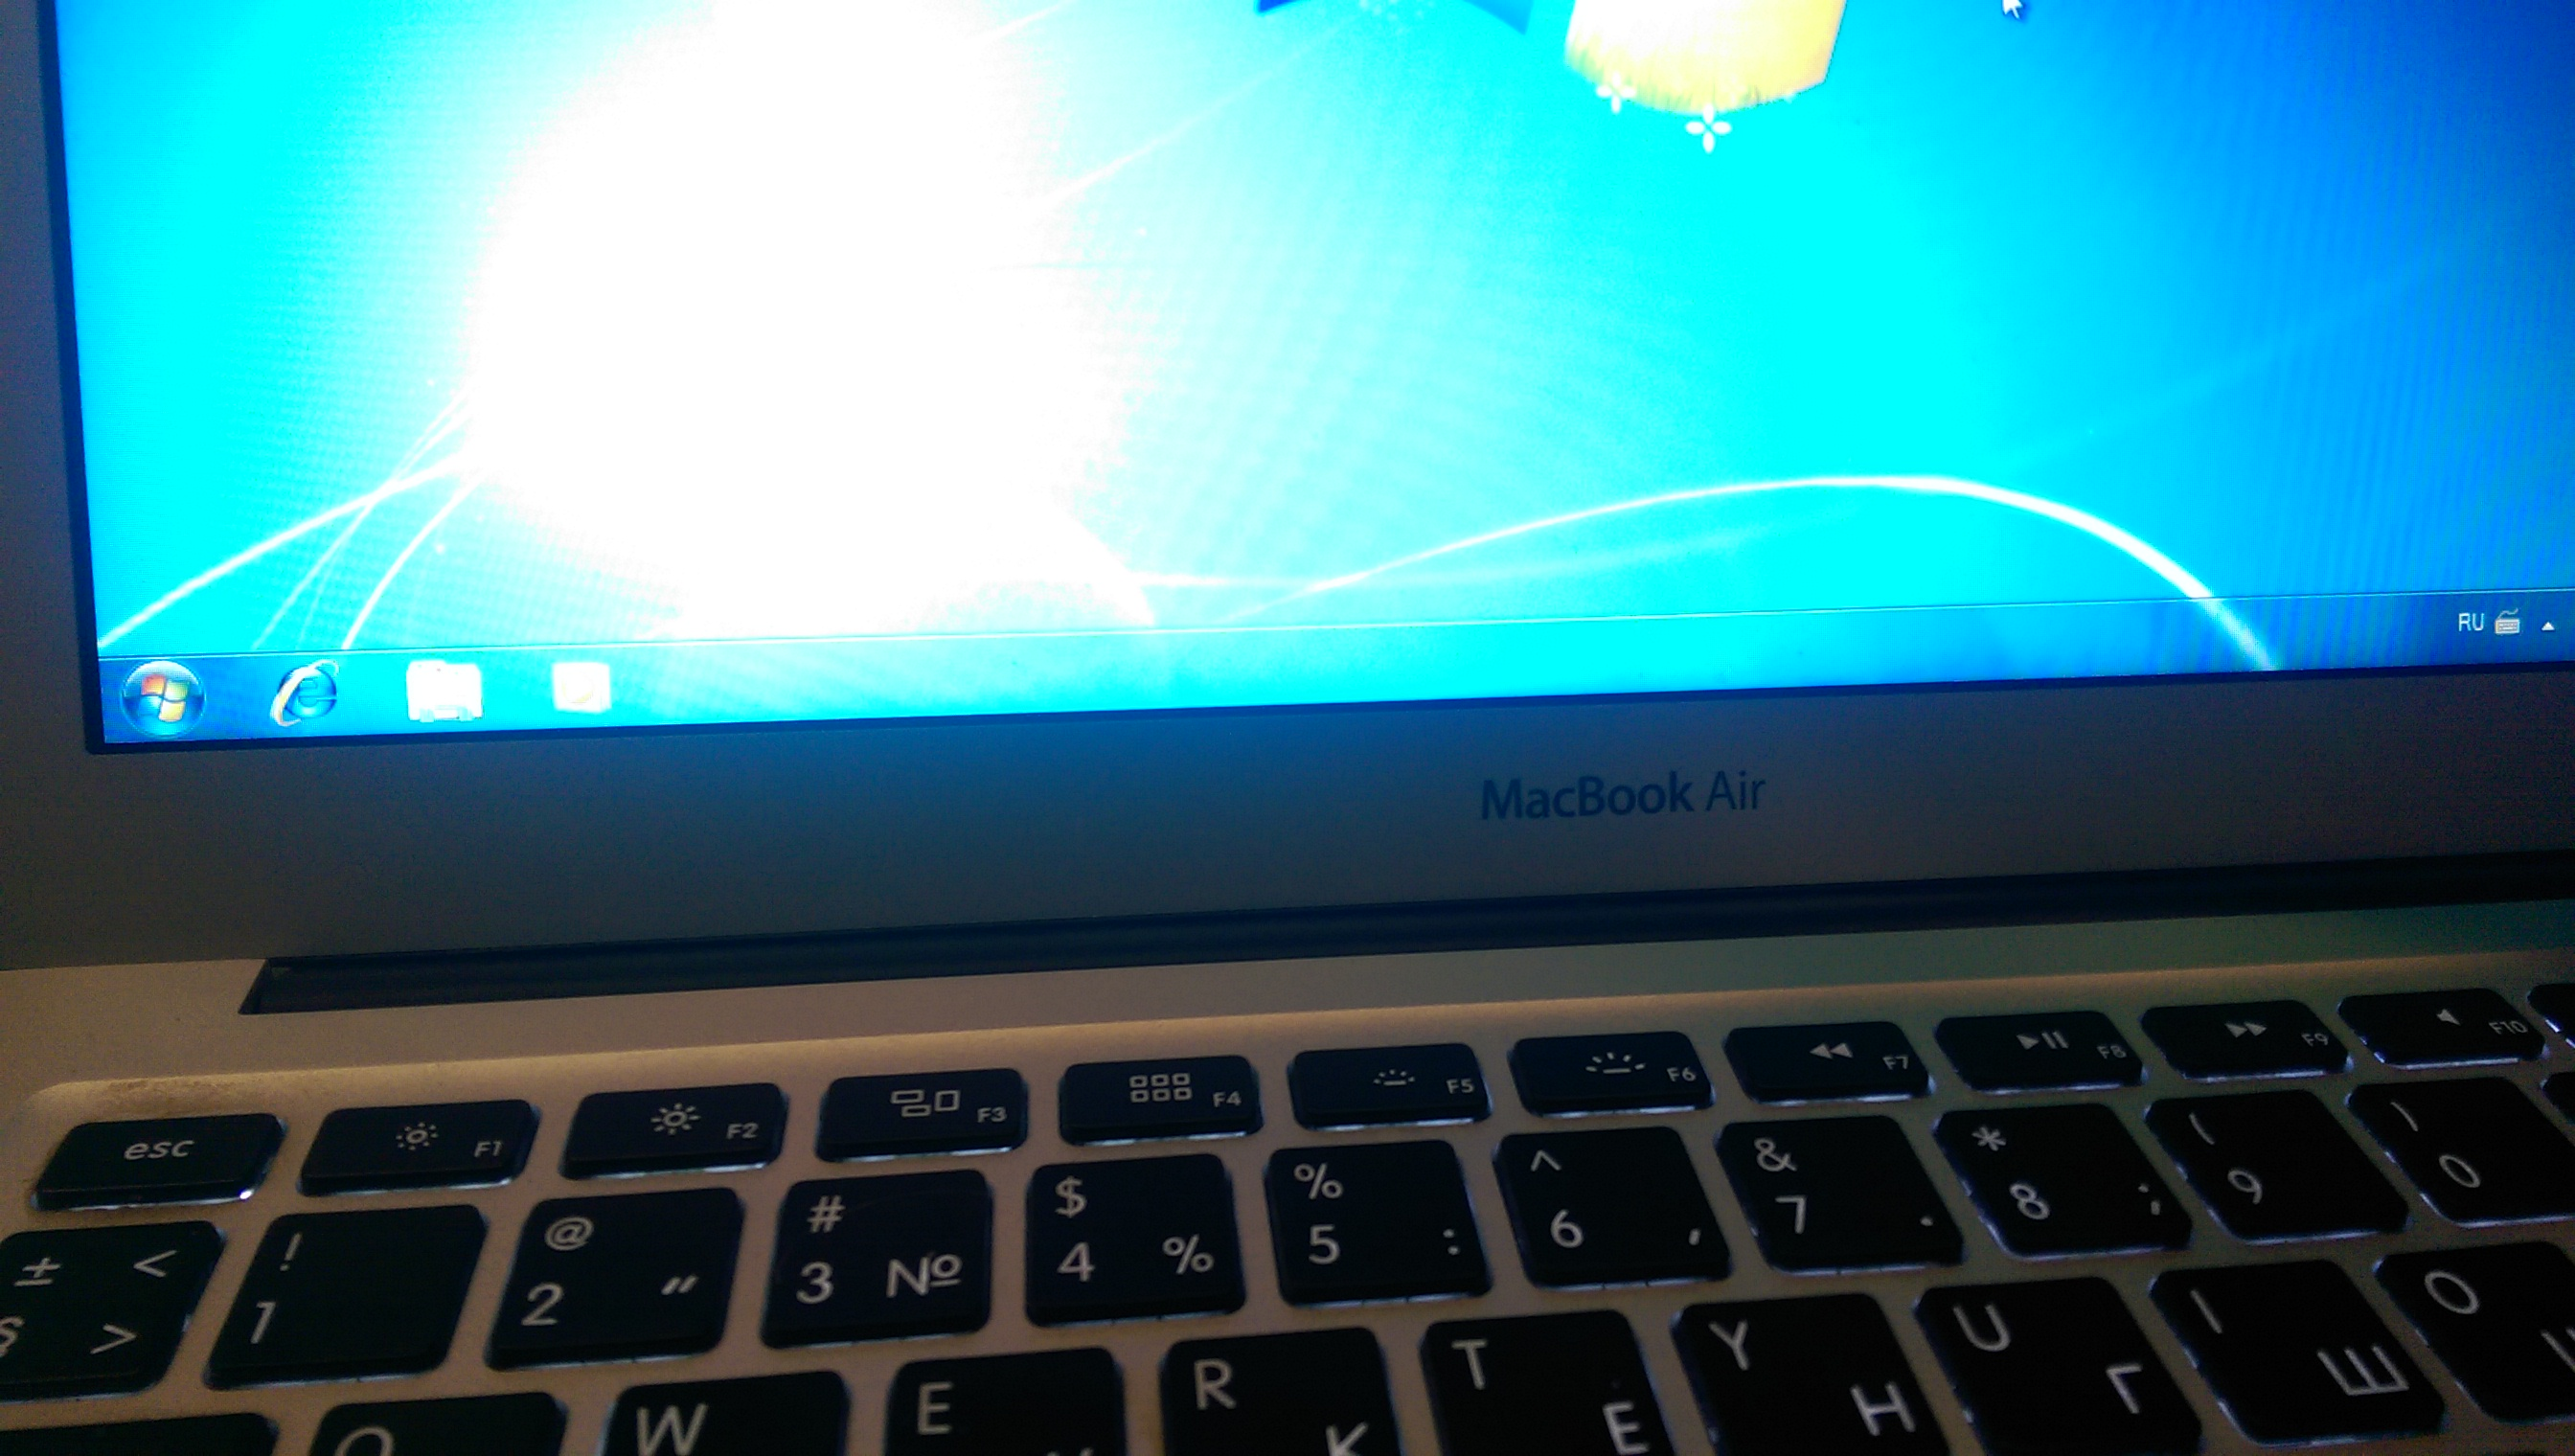 Установка Windows 7 на Macbook AIR 2013